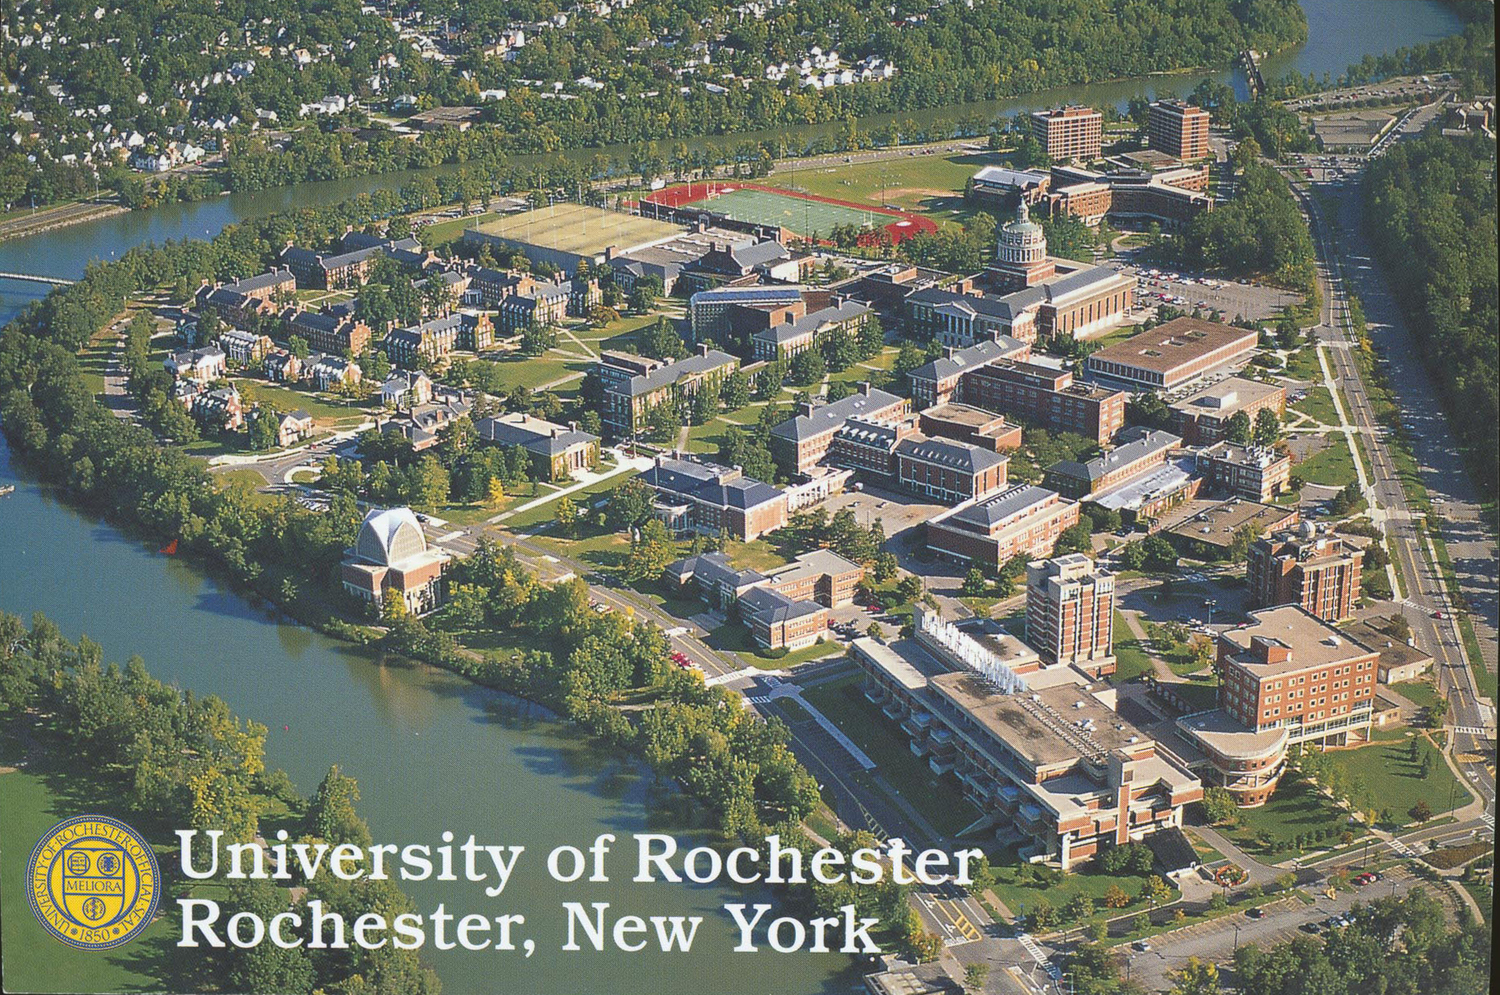 University of Rochester Rochester, N.Y.